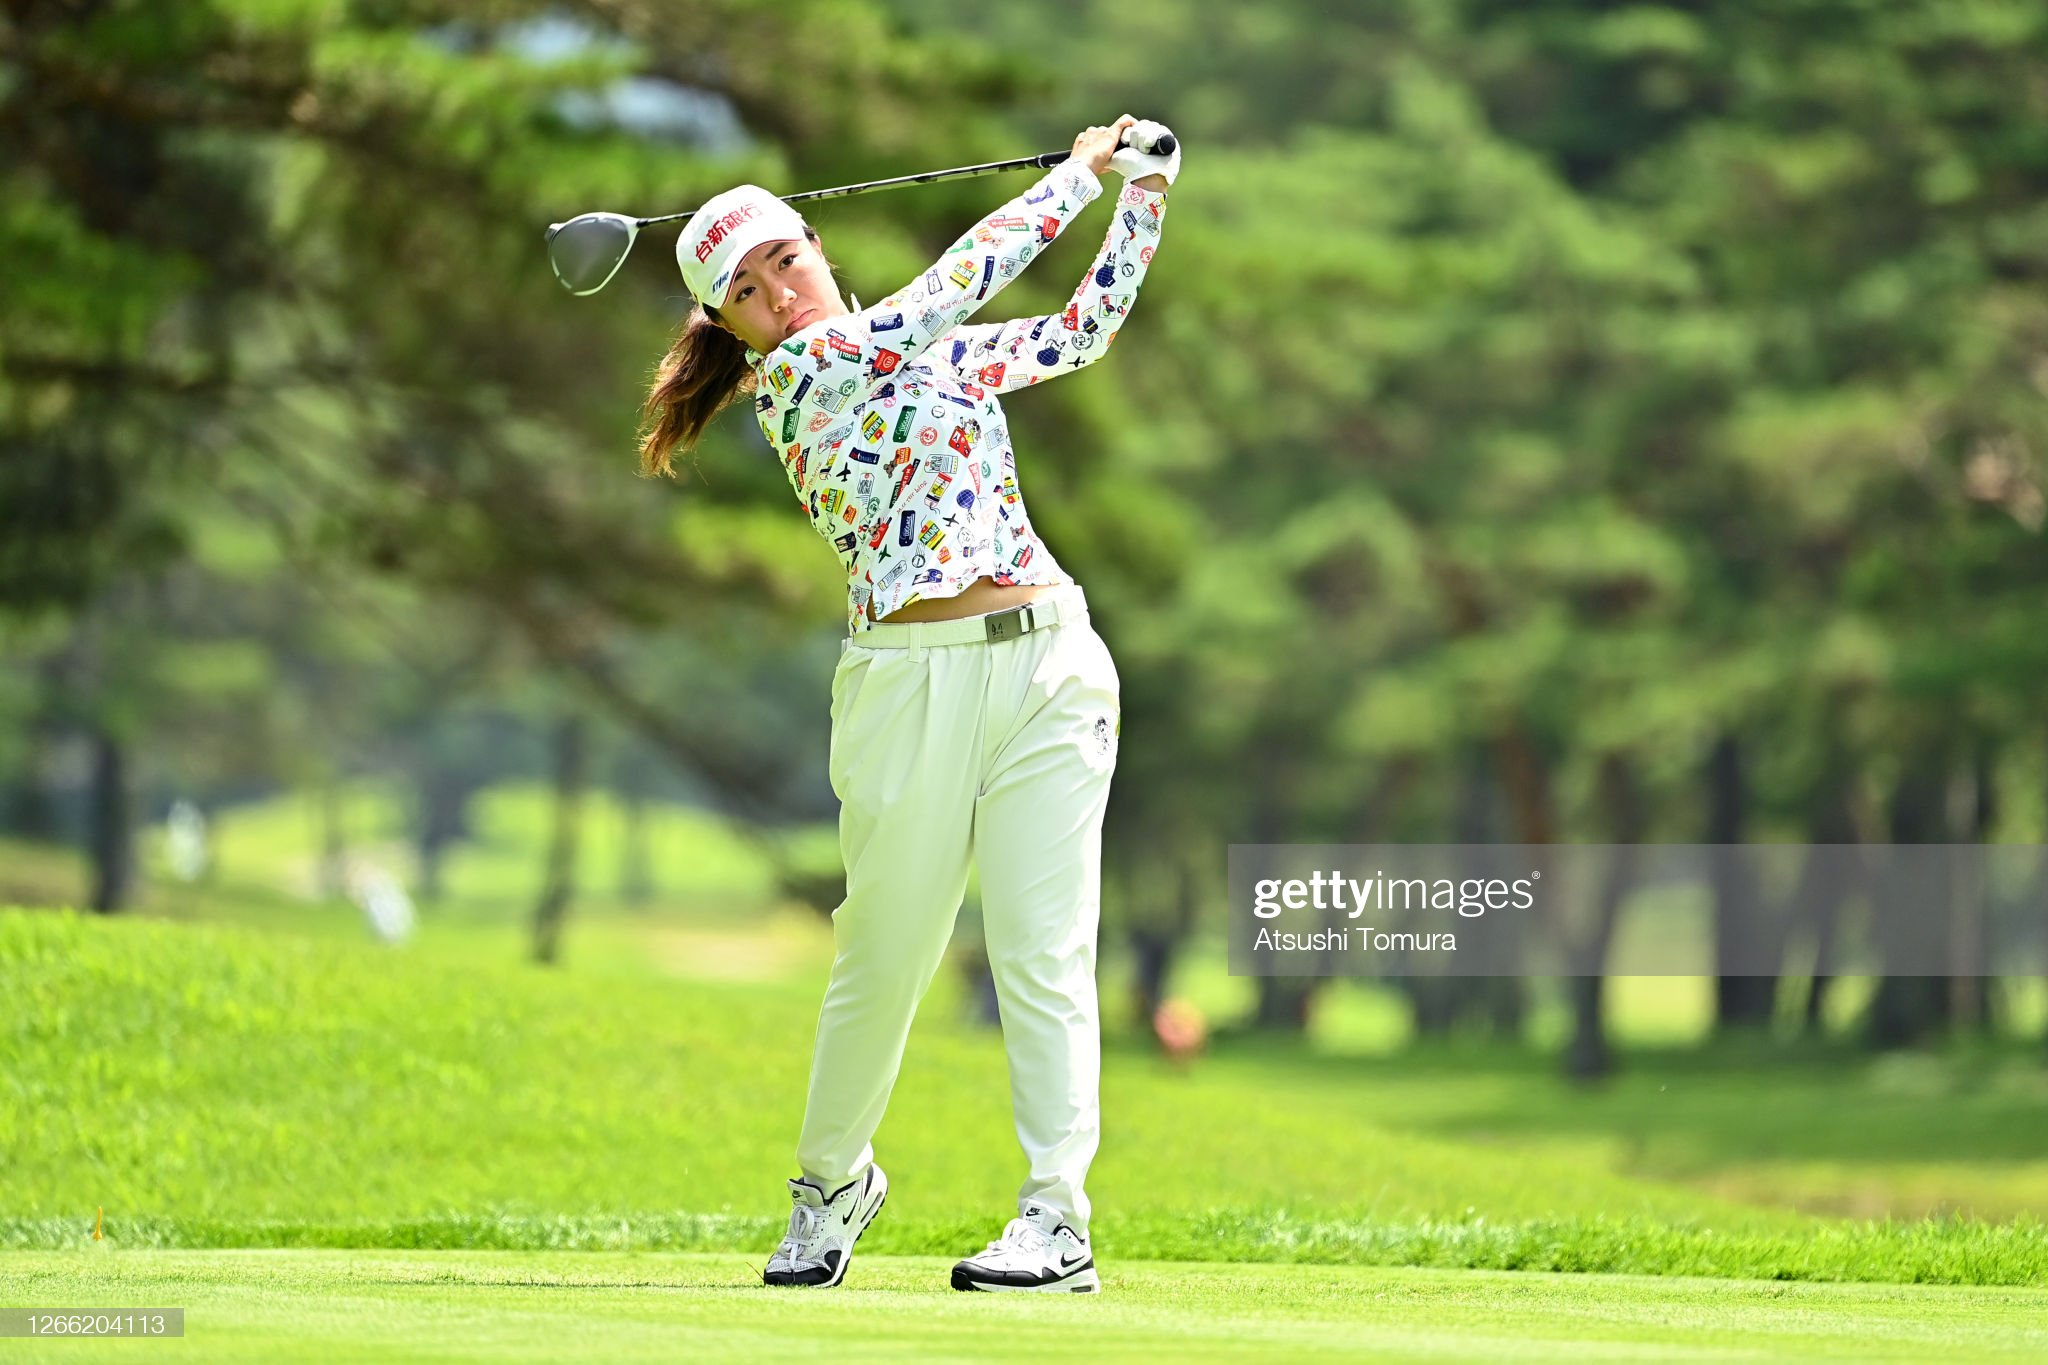 https://media.gettyimages.com/photos/peiying-tsai-of-chinese-taipei-hits-her-tee-shot-on-the-3rd-hole-the-picture-id1266204113?s=2048x2048